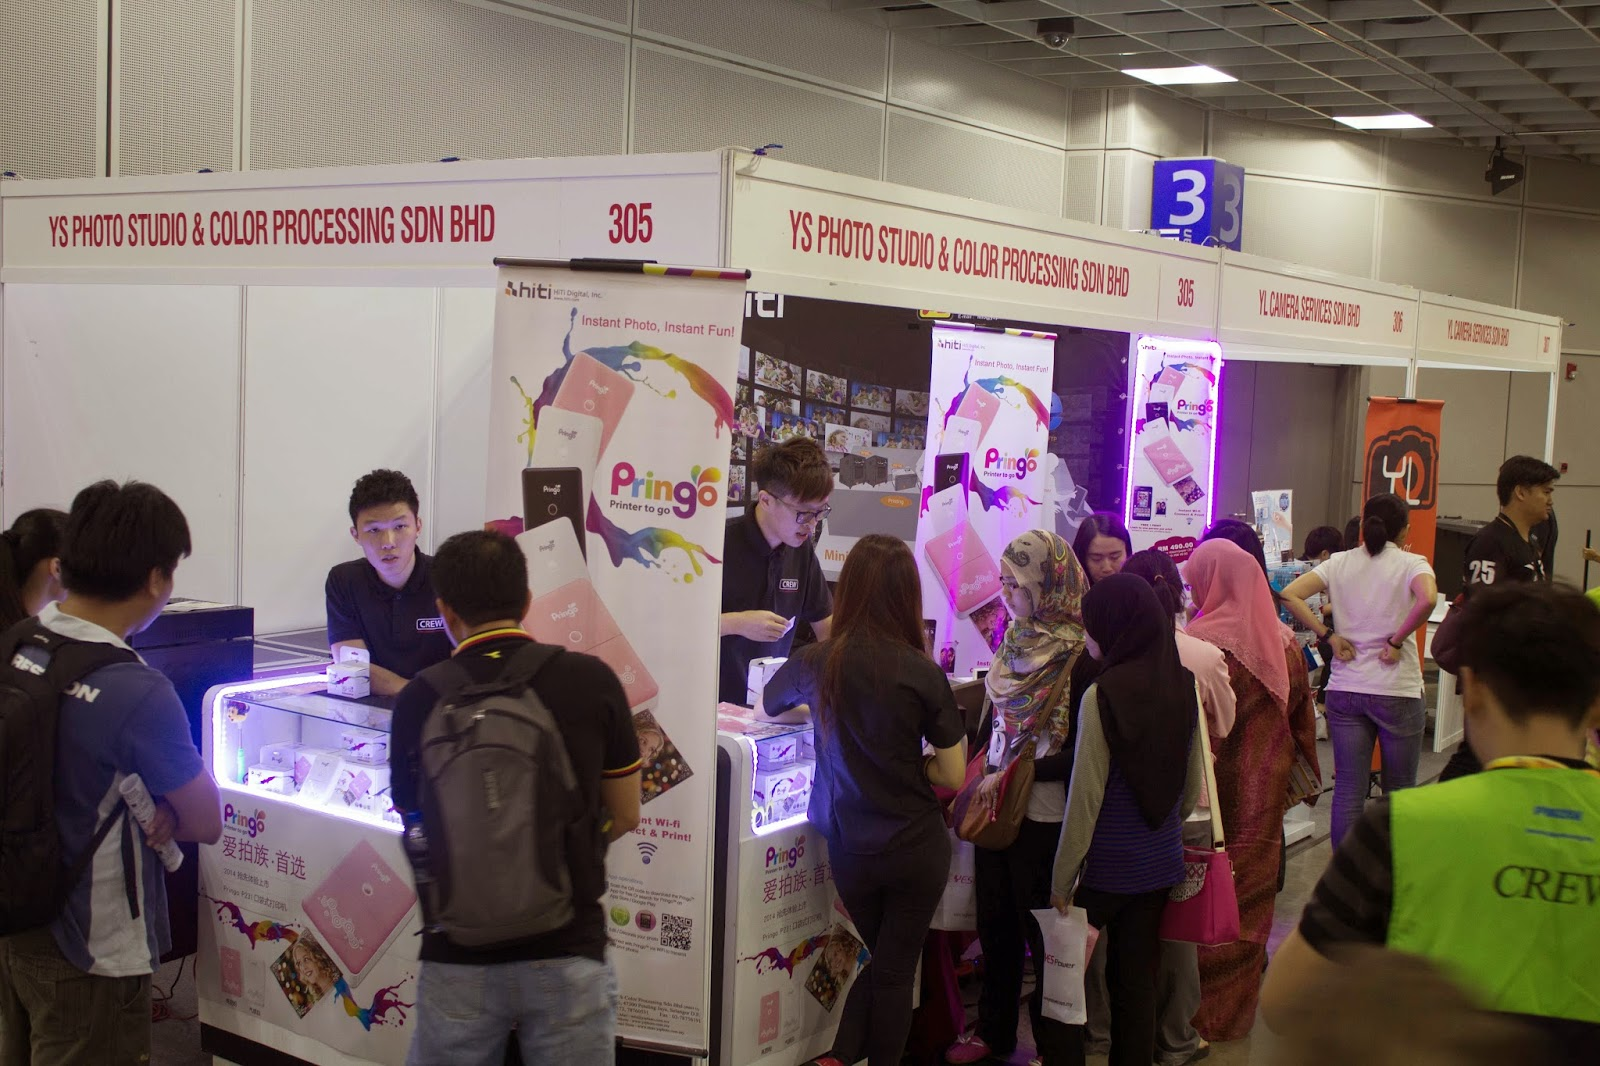 Coverage of PIKOM PC Fair 2014 @ Kuala Lumpur Convention Center 359